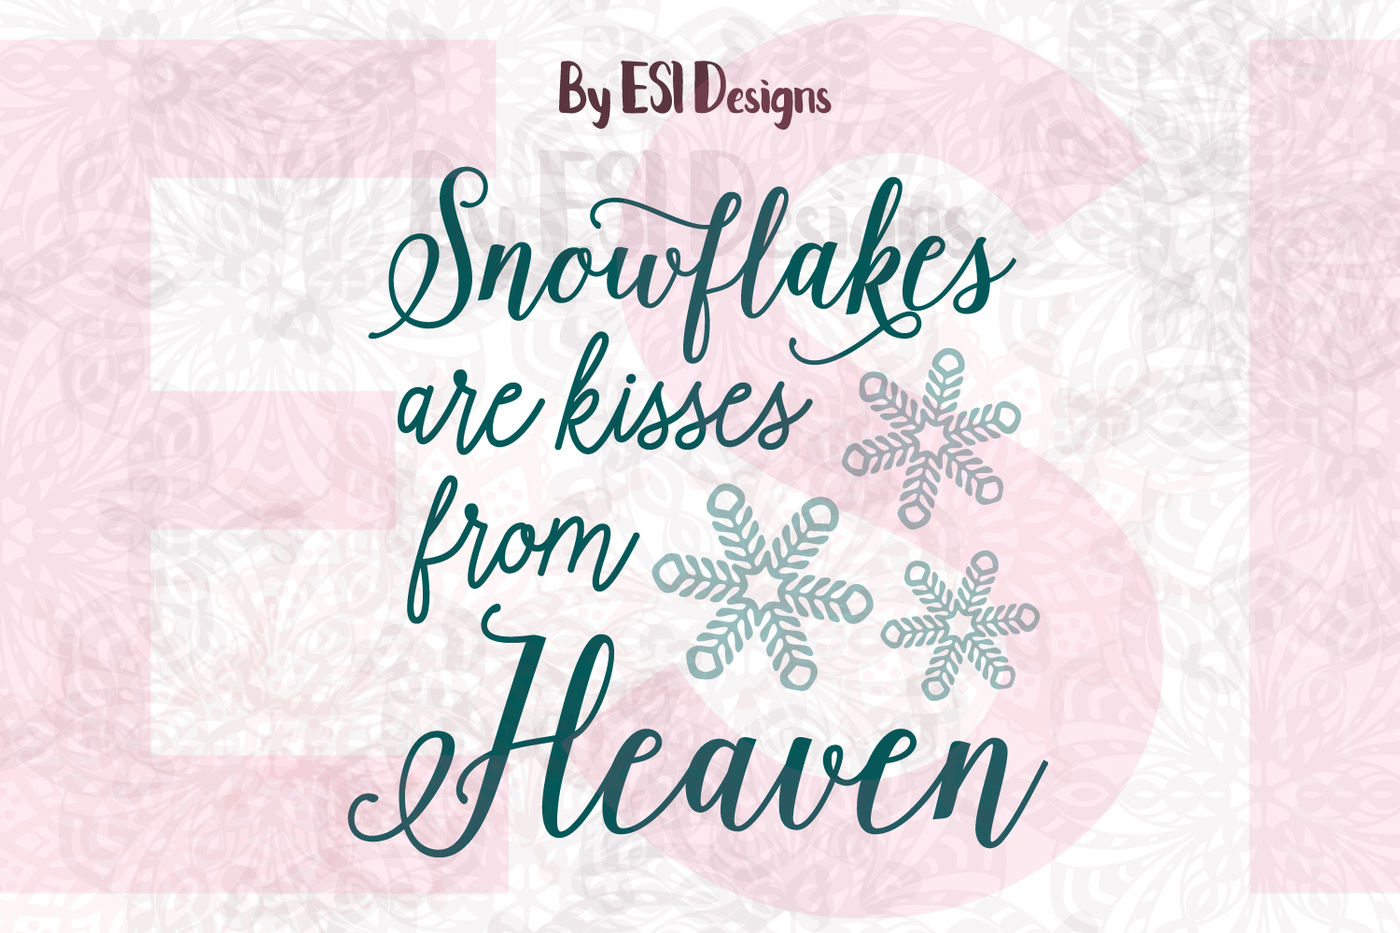 Snowflakes Are Kisses From Heaven Christmas Quote Design By Esi Designs Thehungryjpeg Com